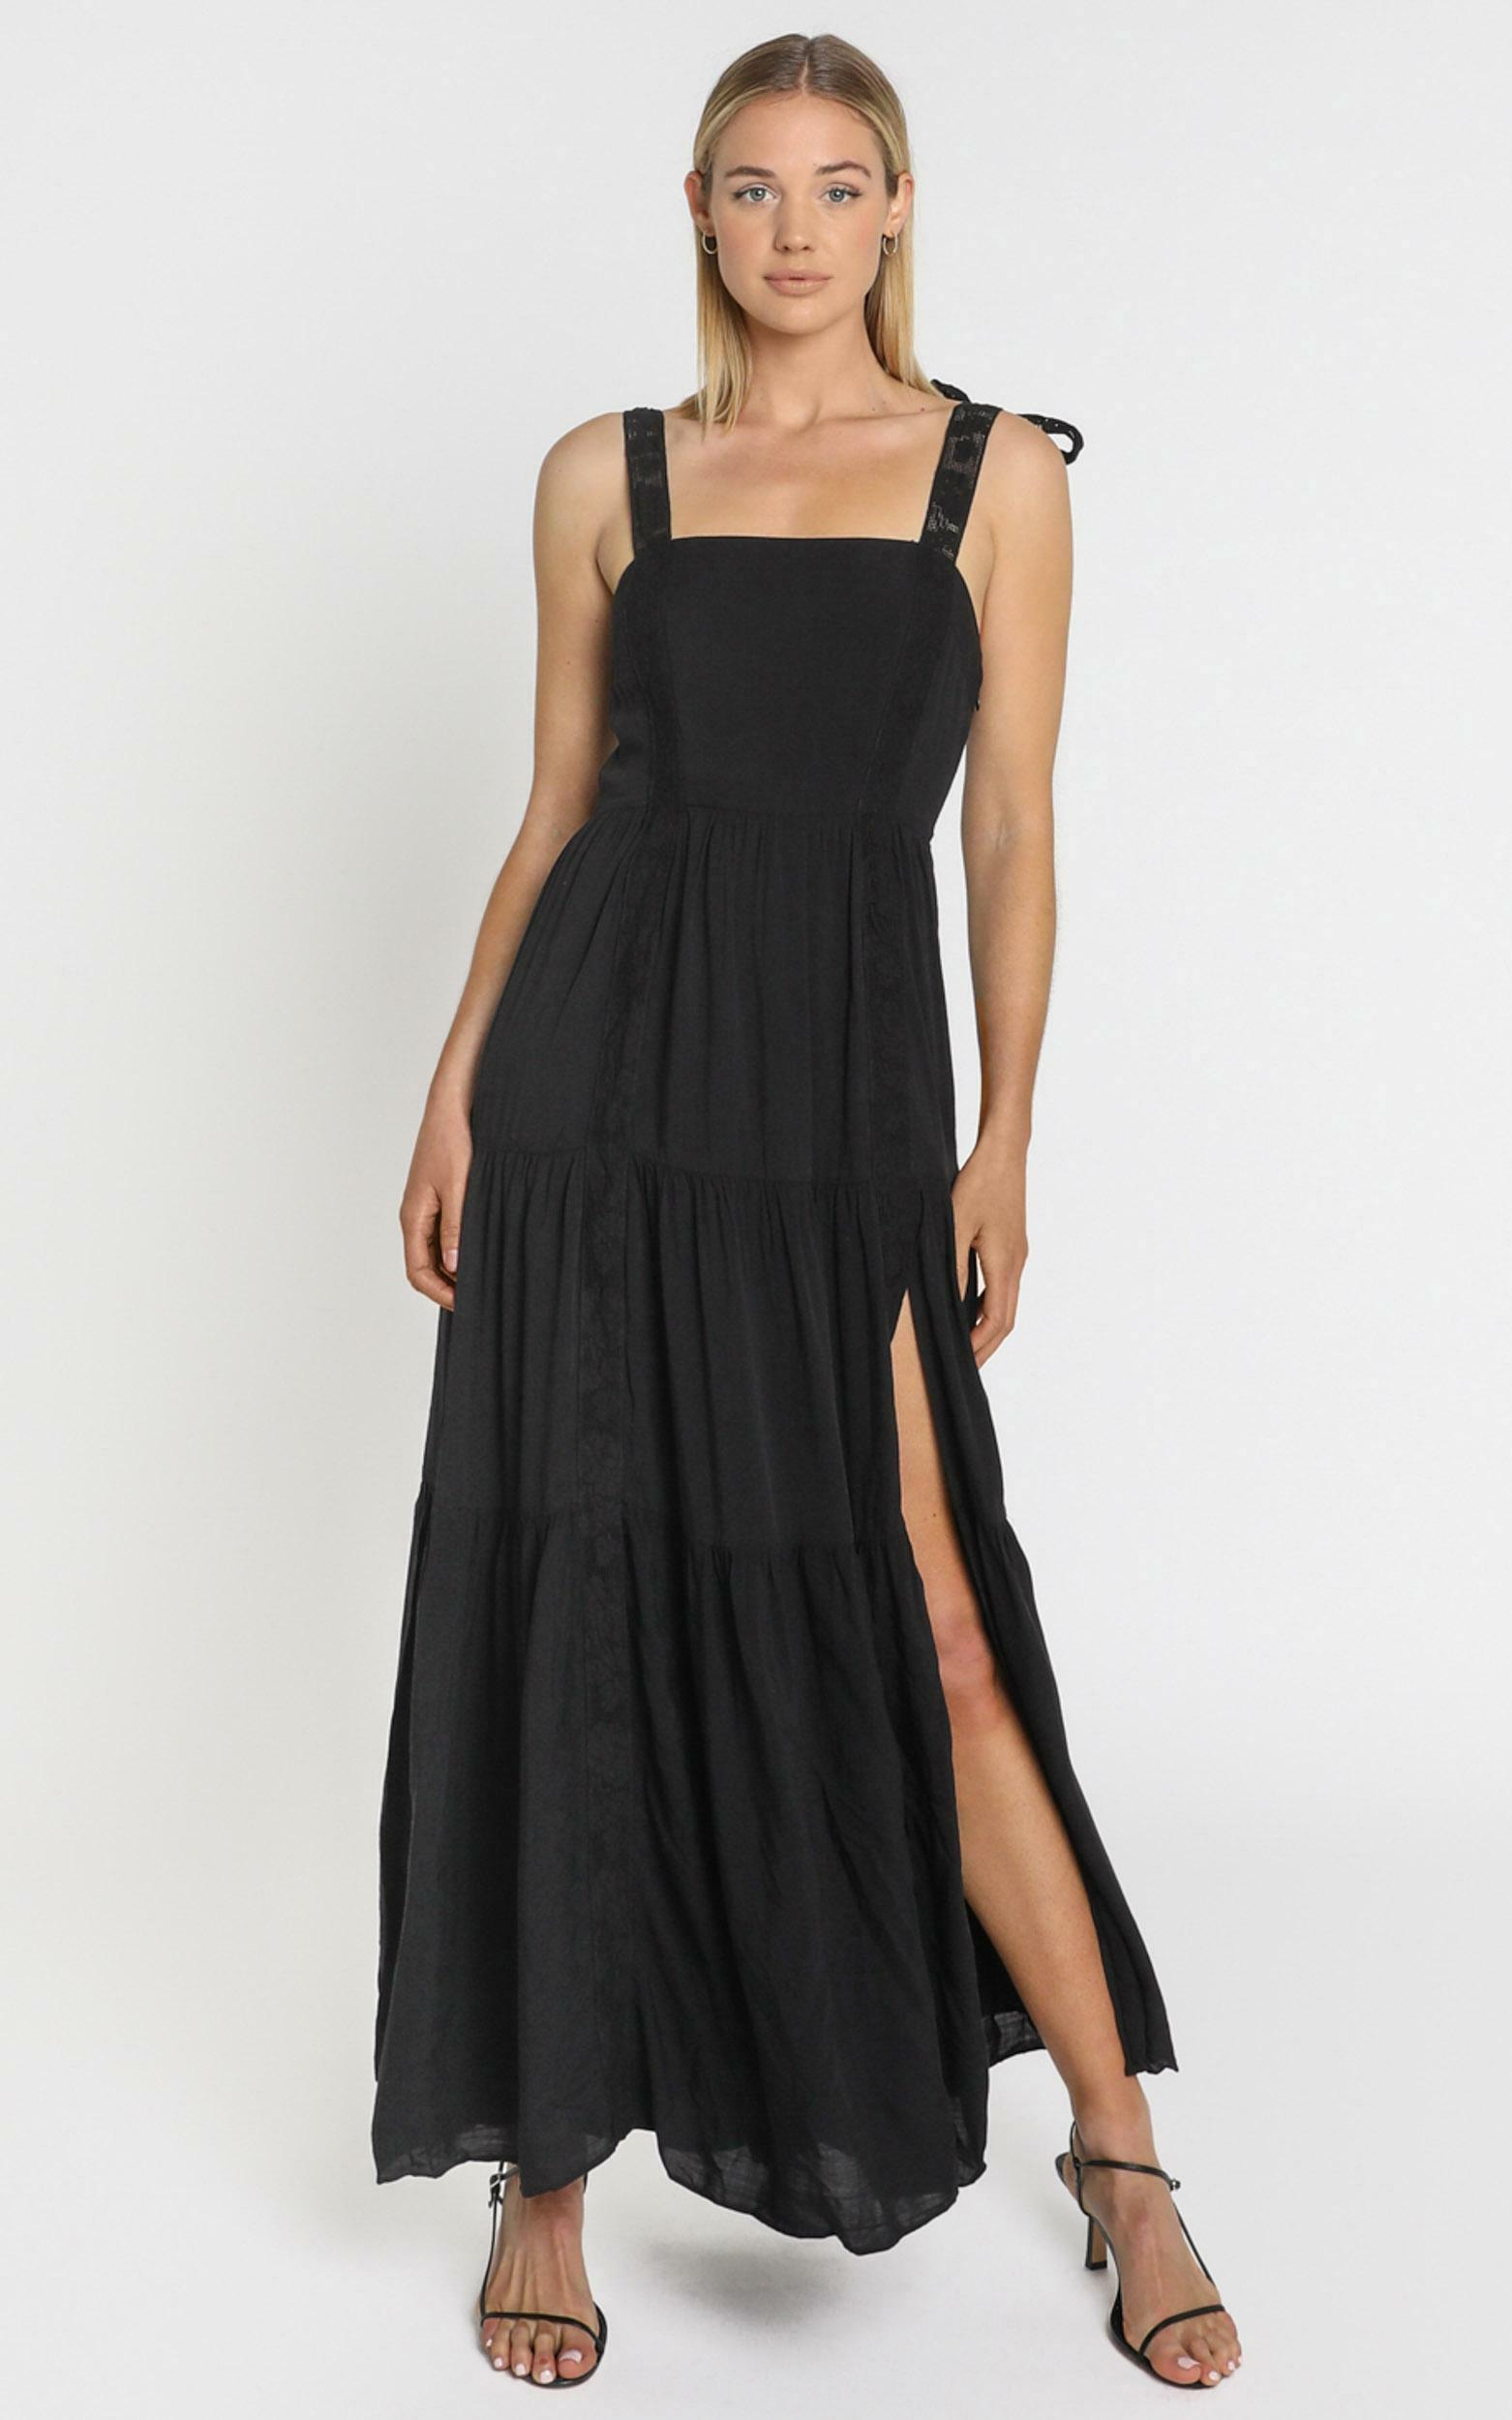 Afternoon Stroll Maxi Dress In black - 4 (XXS), Black, hi-res image number null